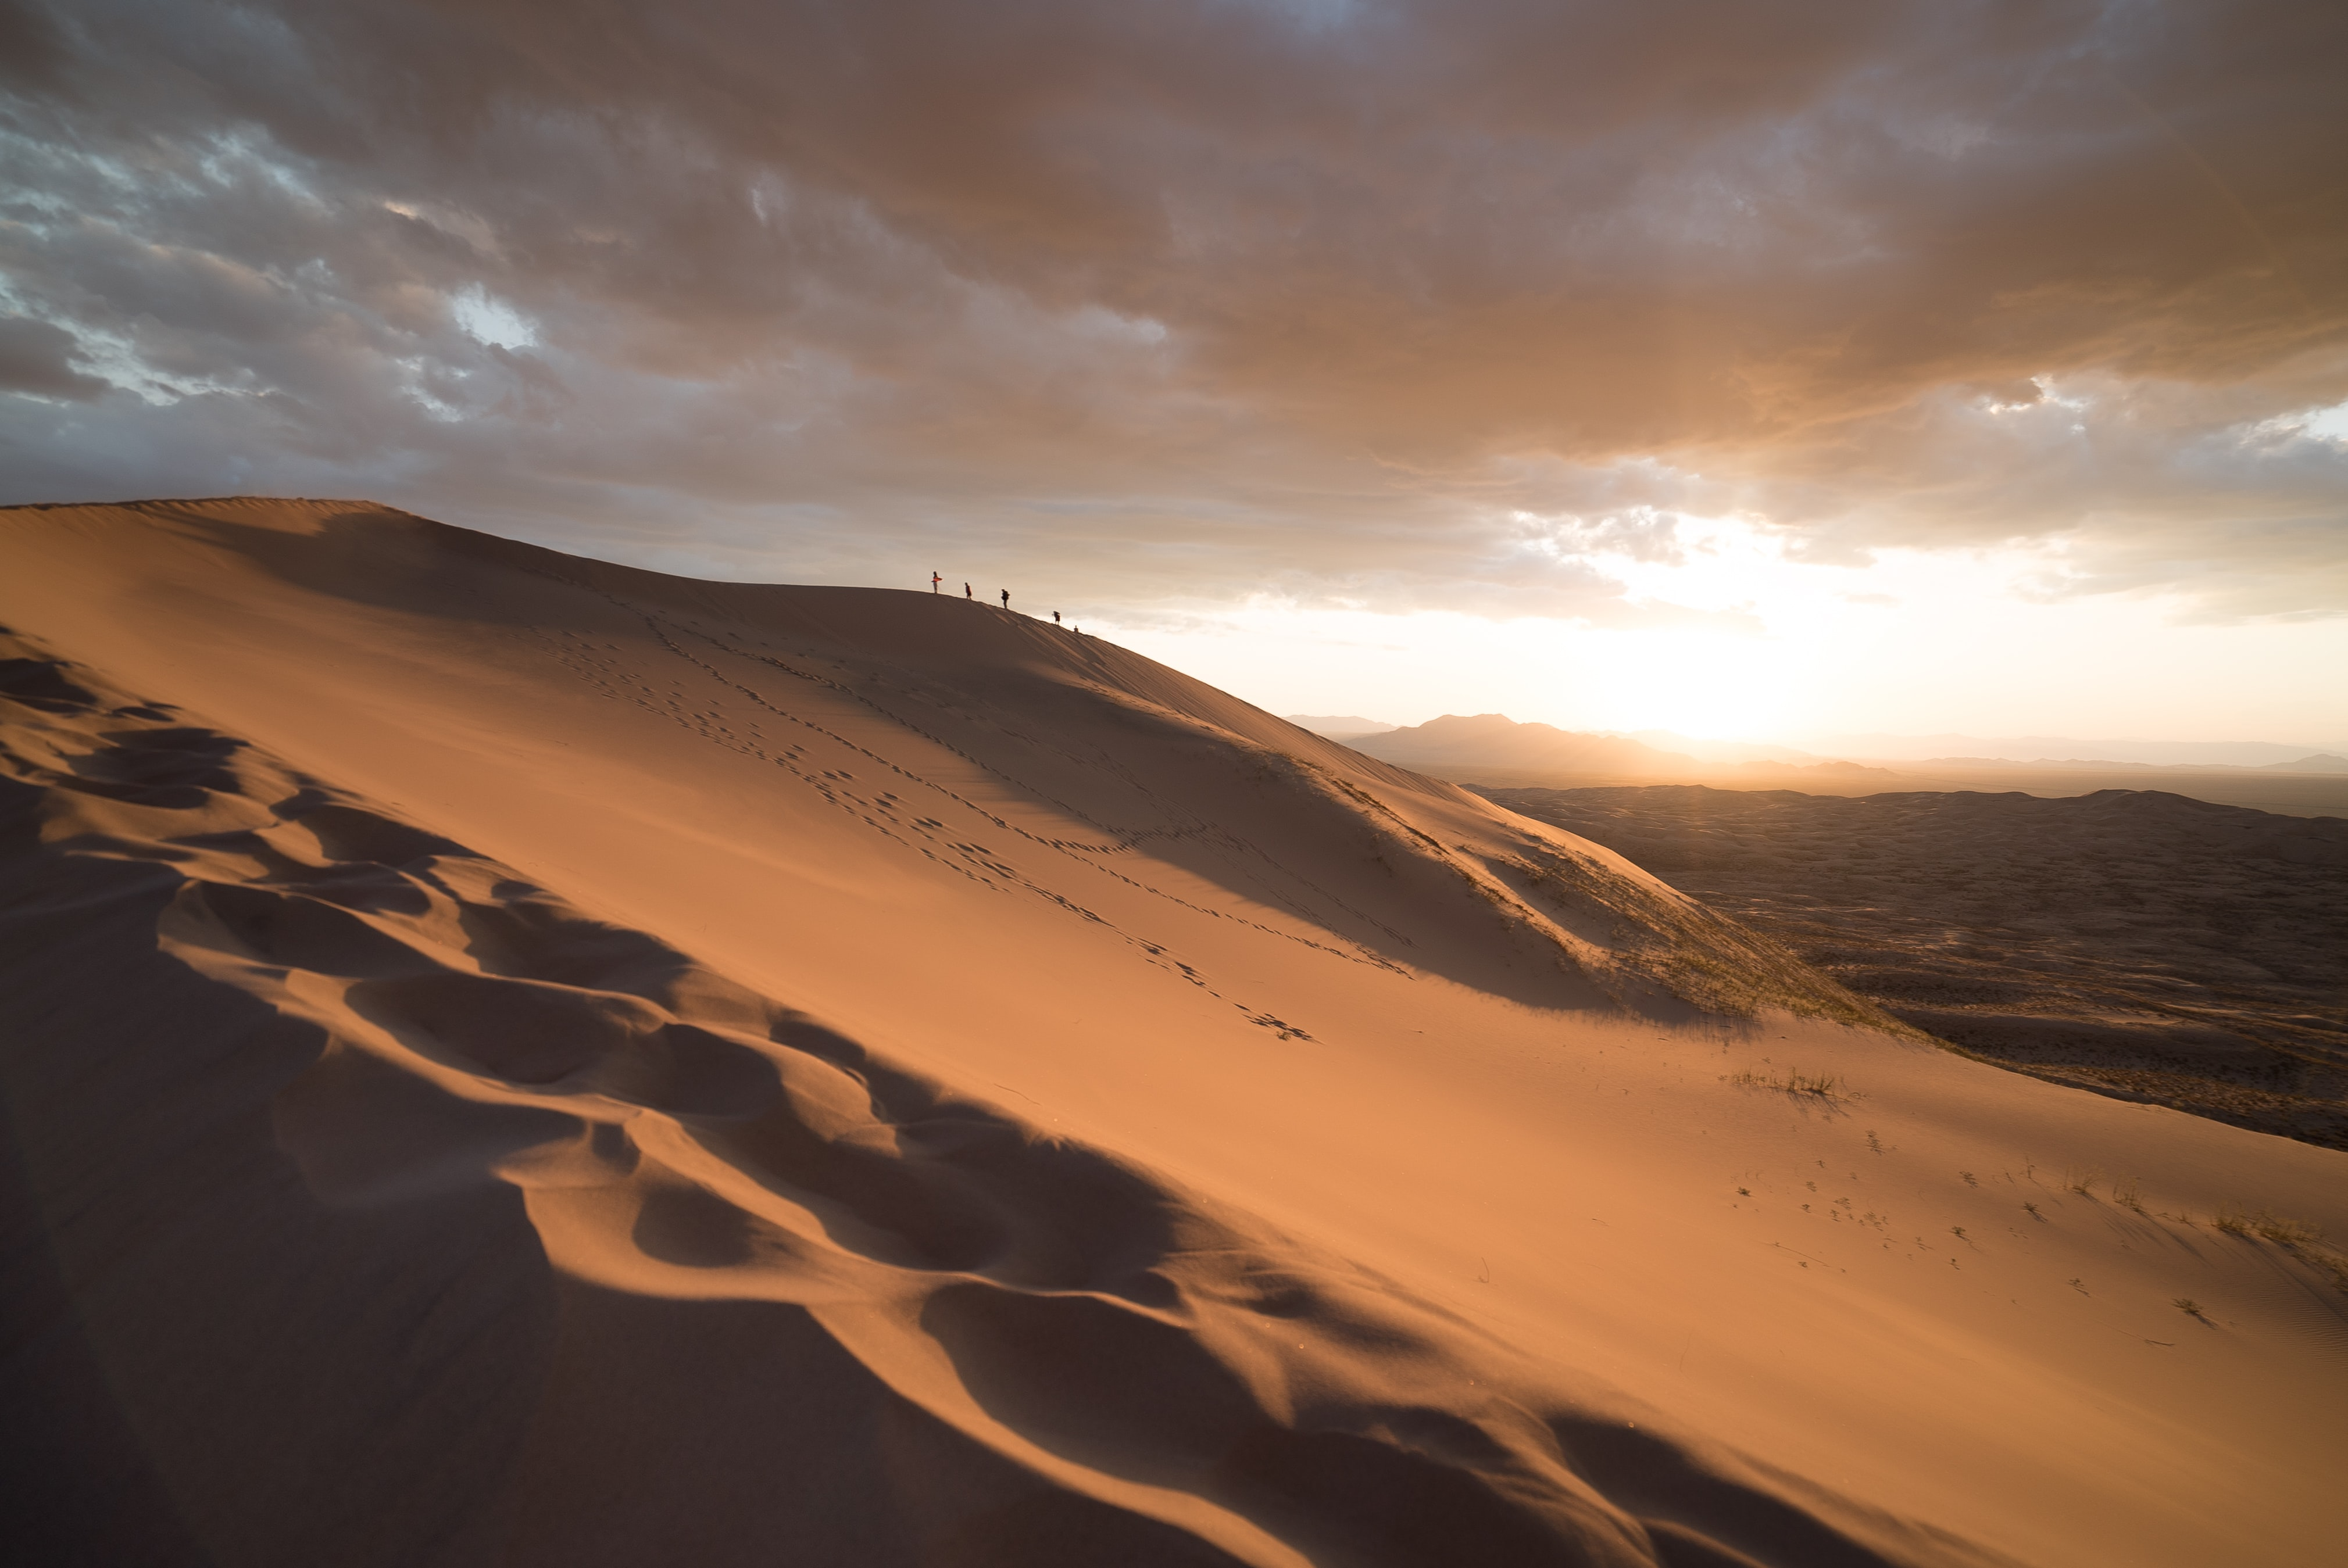 Hikers walking on sand dunes in the Mojave National Preserve